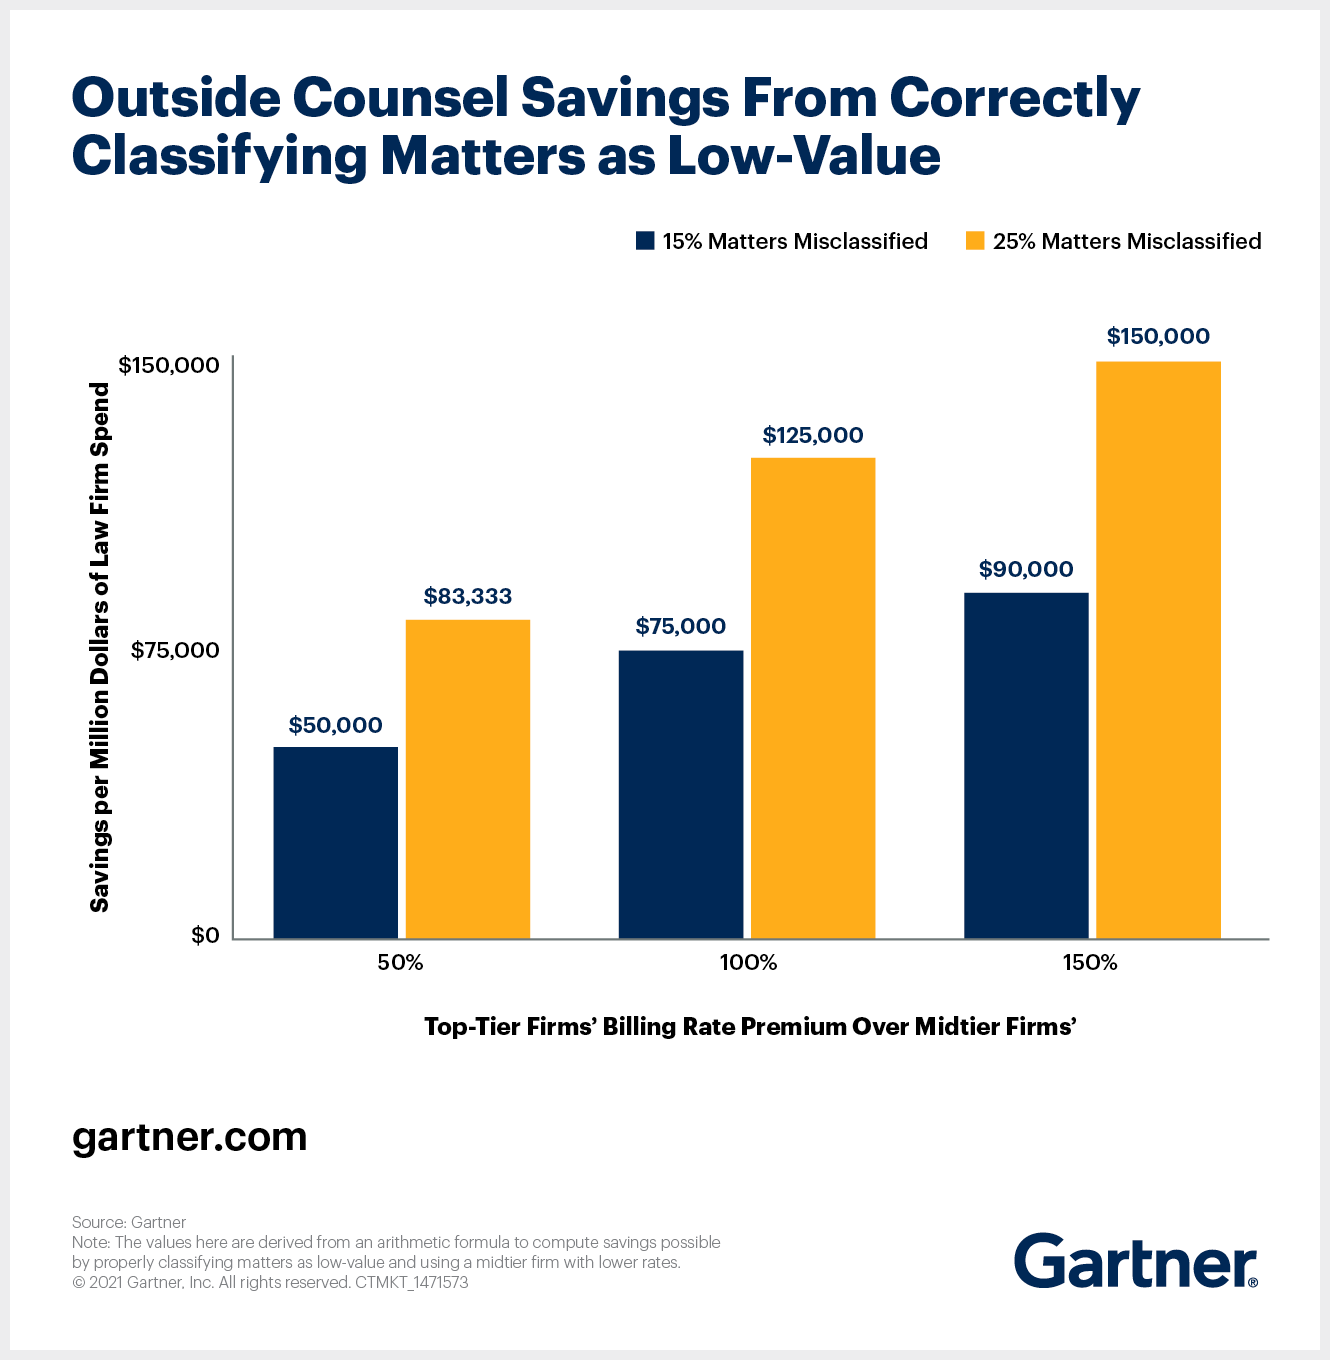 Outside Counsel Savings From Correctly Classifying Matters as Low-Value